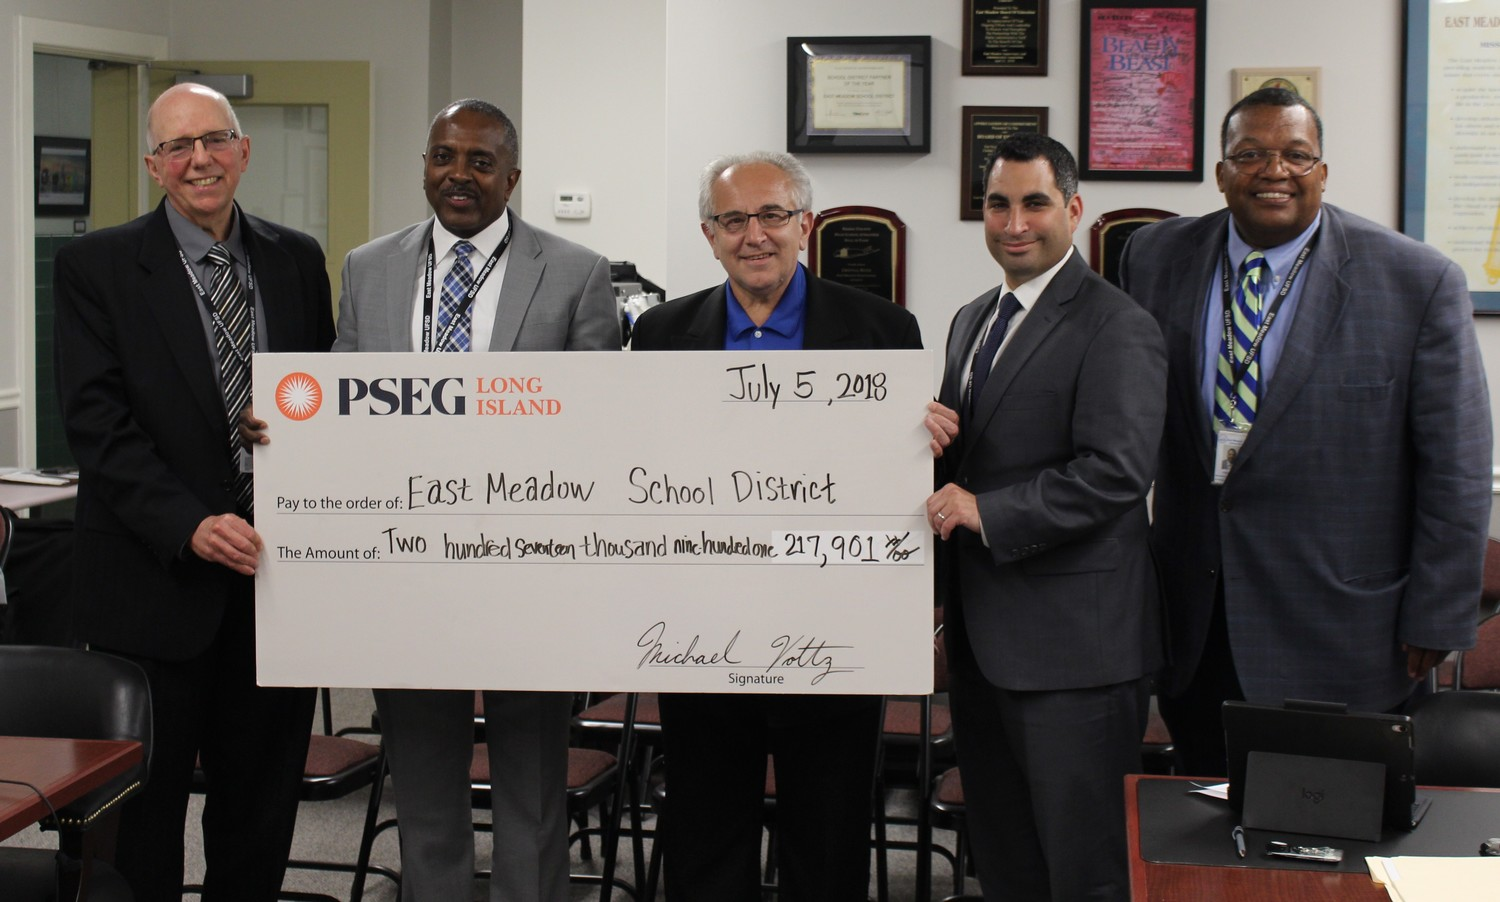 Domenic Abbatiello, center, a representative of PSEG Long Island, gave a rebate check to the East Meadow School District during a July 5 Board of Education meeting. Above is trustee Joseph Parisi, Superintendent Kenneth Card, President Matthew Melnick and Arthur Williams, the assistant to the superintendent for administration and special projects.